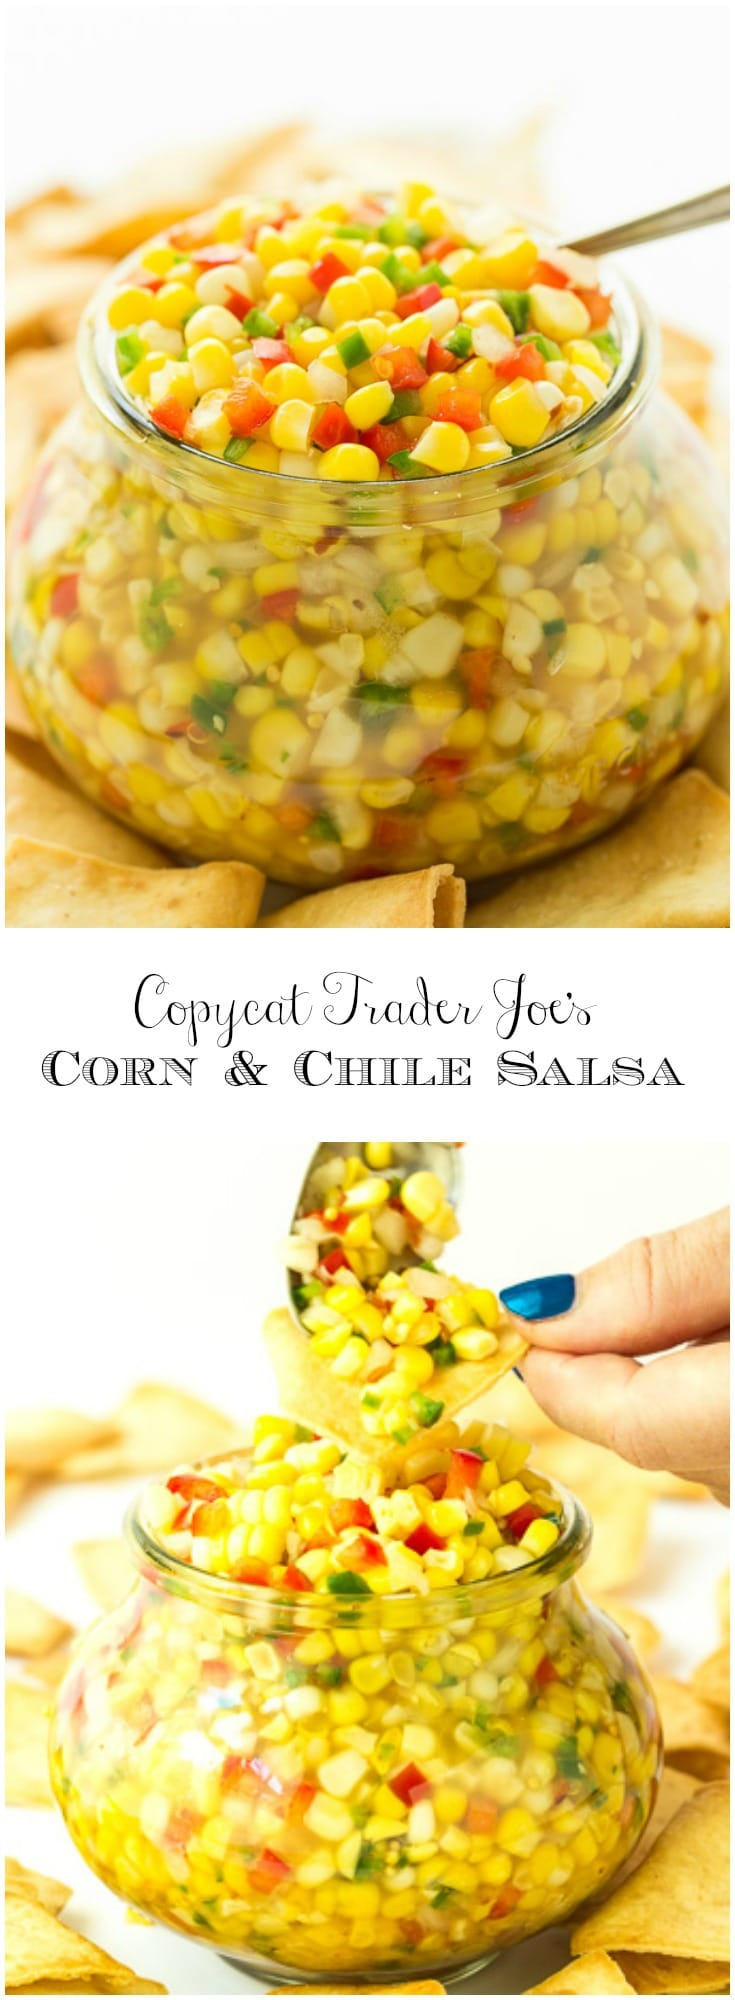 Addictingly delicious, this Copycat Trader Joe's Corn and Chile Salsa is wonderful with chips, on salads, sandwiches, quesadillas, pizza... you name it!